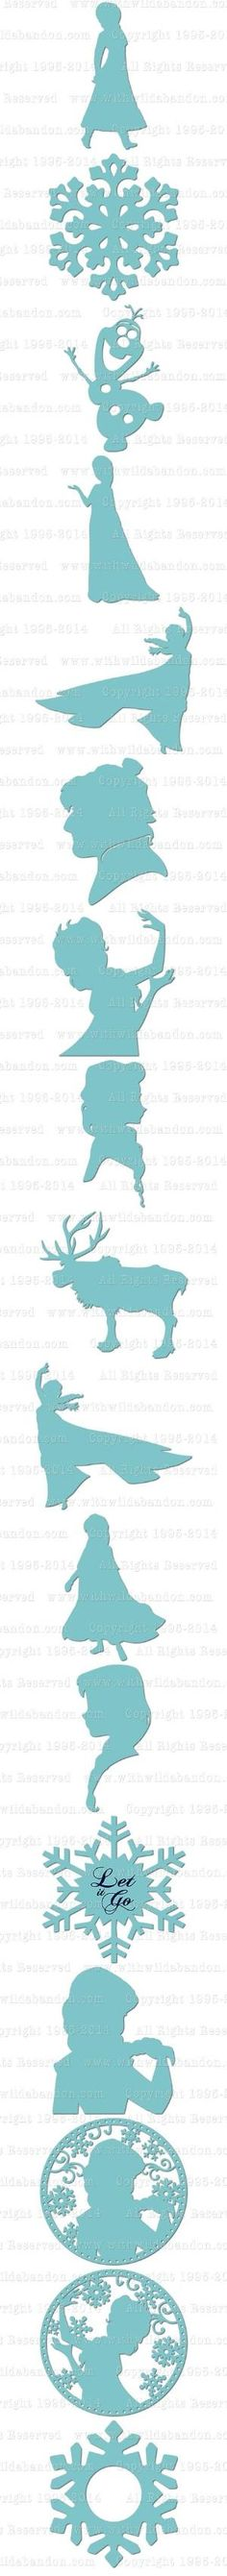 Frozen SVG, Frozen Silhouettes, Anna SVG, Elsa SVG, Anna Silhouette, Elsa Silhouette, Vector, Princess SVG, png, ai, eps Frozen, Clipart, Silhouettes, Anna, Elsa, Sven, Olaf, Princess, Snowflake, svg, png, vector, Graphics, Explore or Cameo Silhouette by jennifer.westfall.18